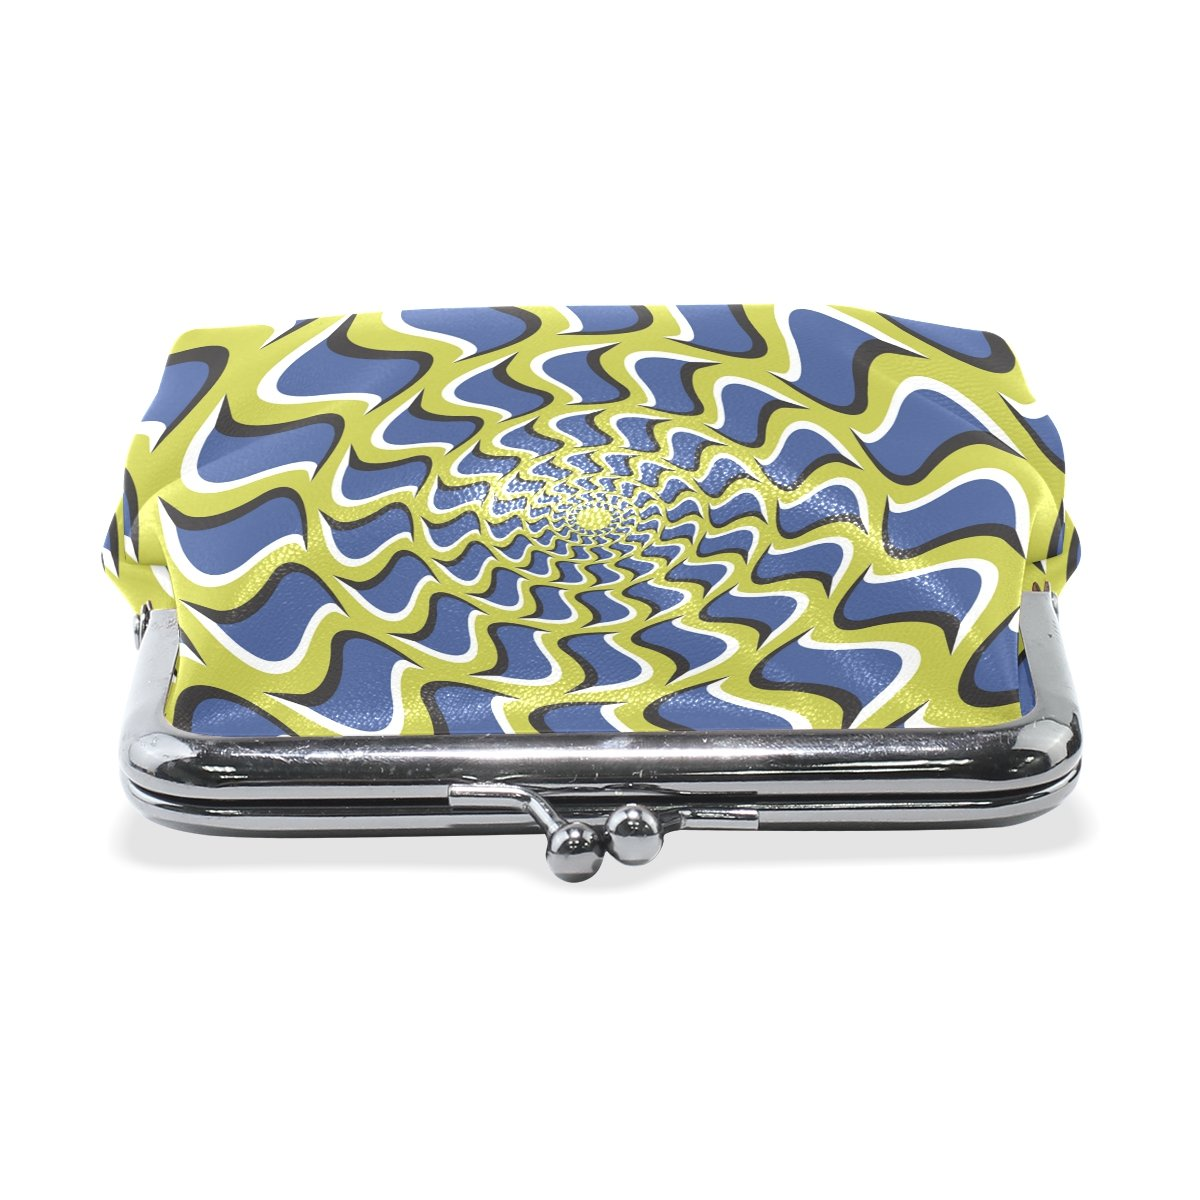 Coin Purse Colorful Ring Grid Wallet Buckle Clutch Handbag For Women Girls Gift